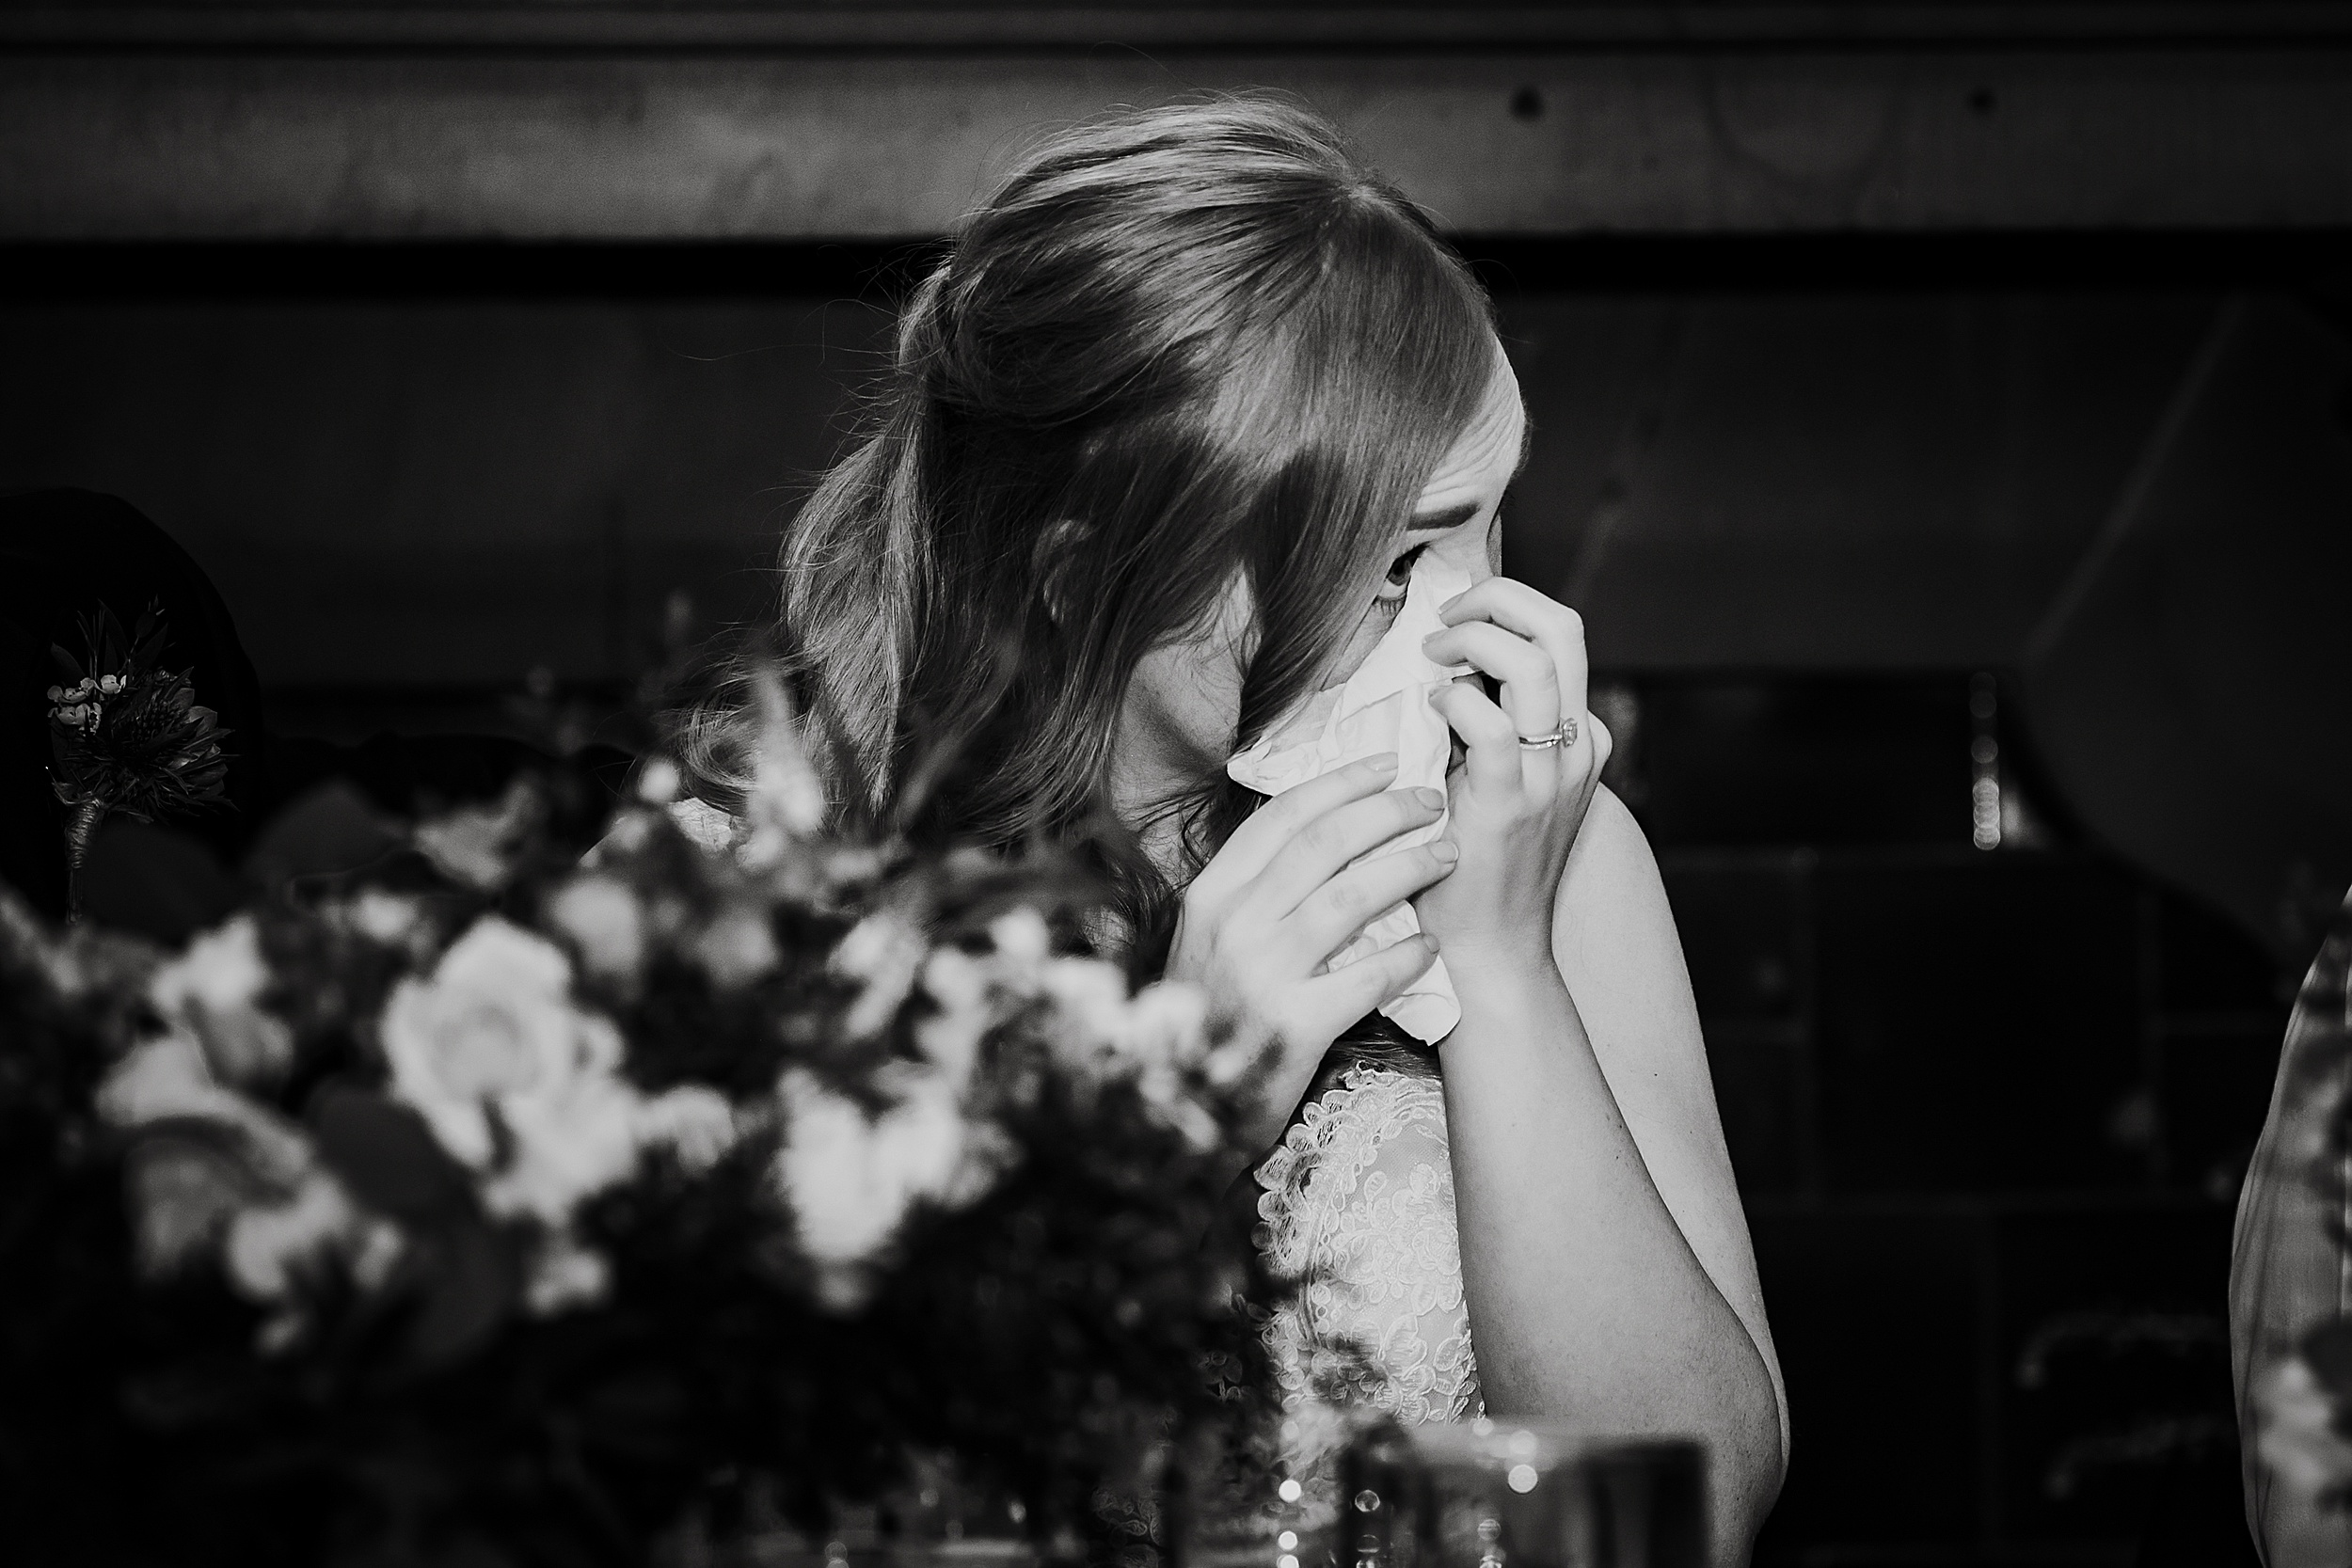 Peckforton_Castle_Cheshire_Toronto_Wedding_Photographer_UK_Destination_Wedding_0127.jpg